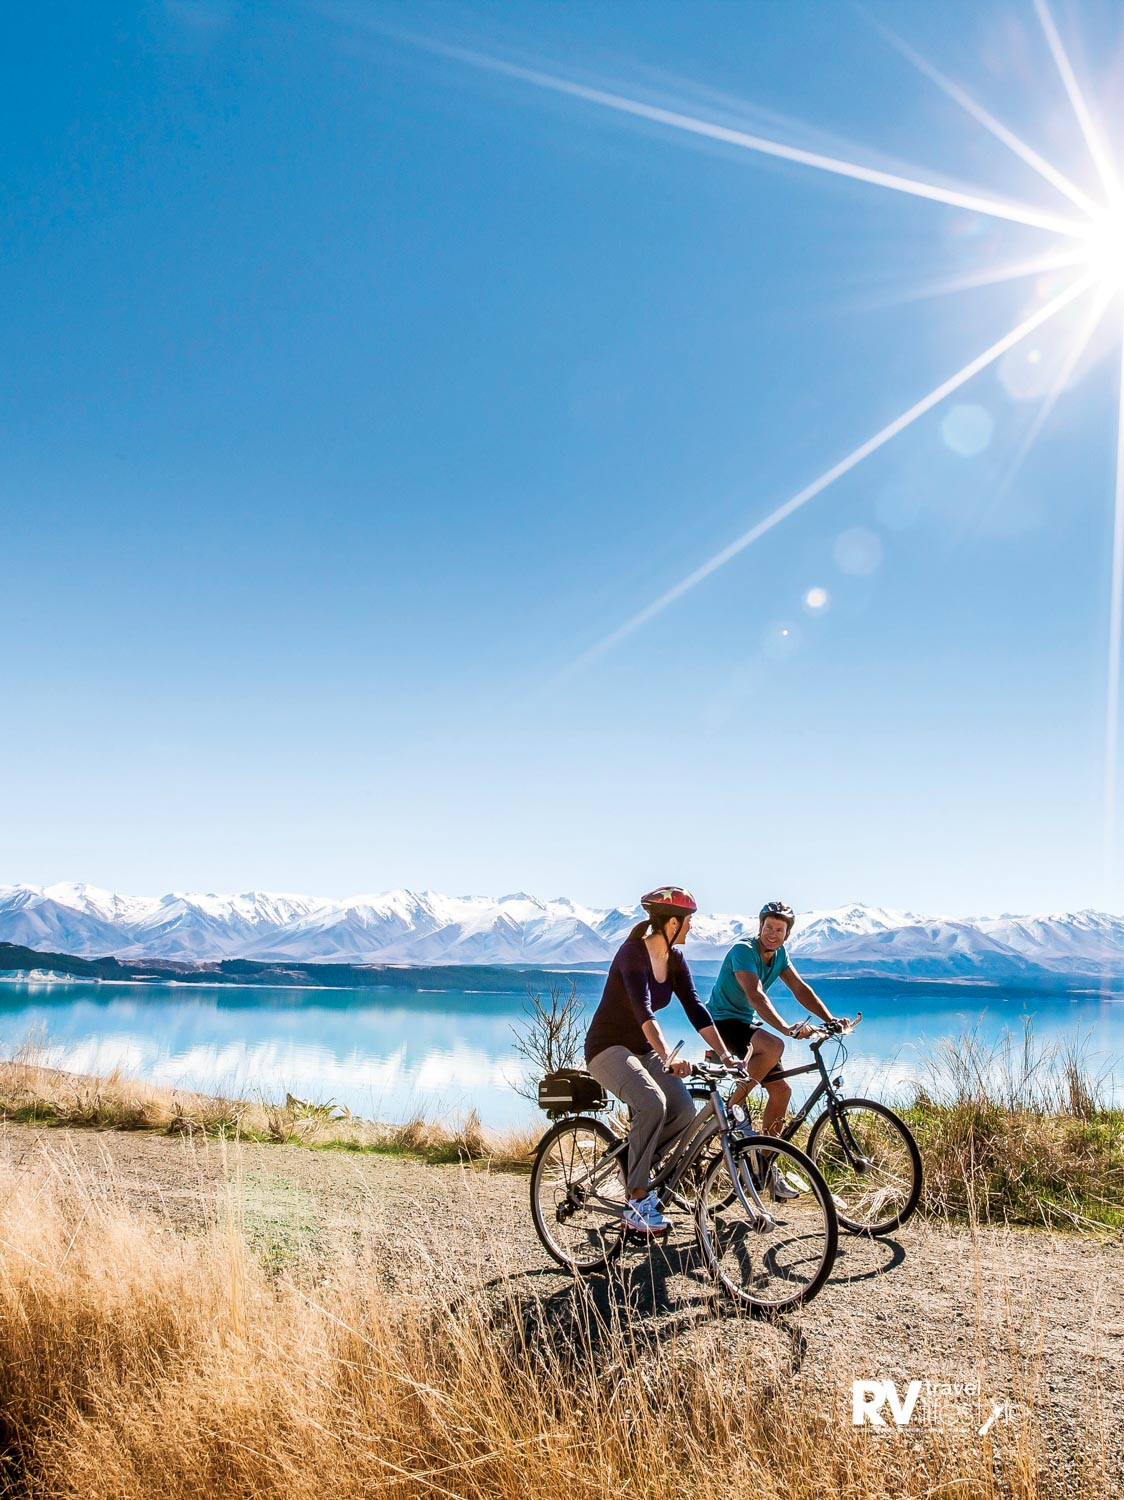 Cyclists riding alongside Lake Pukaki on a perfect day. Photo by Miles Holden